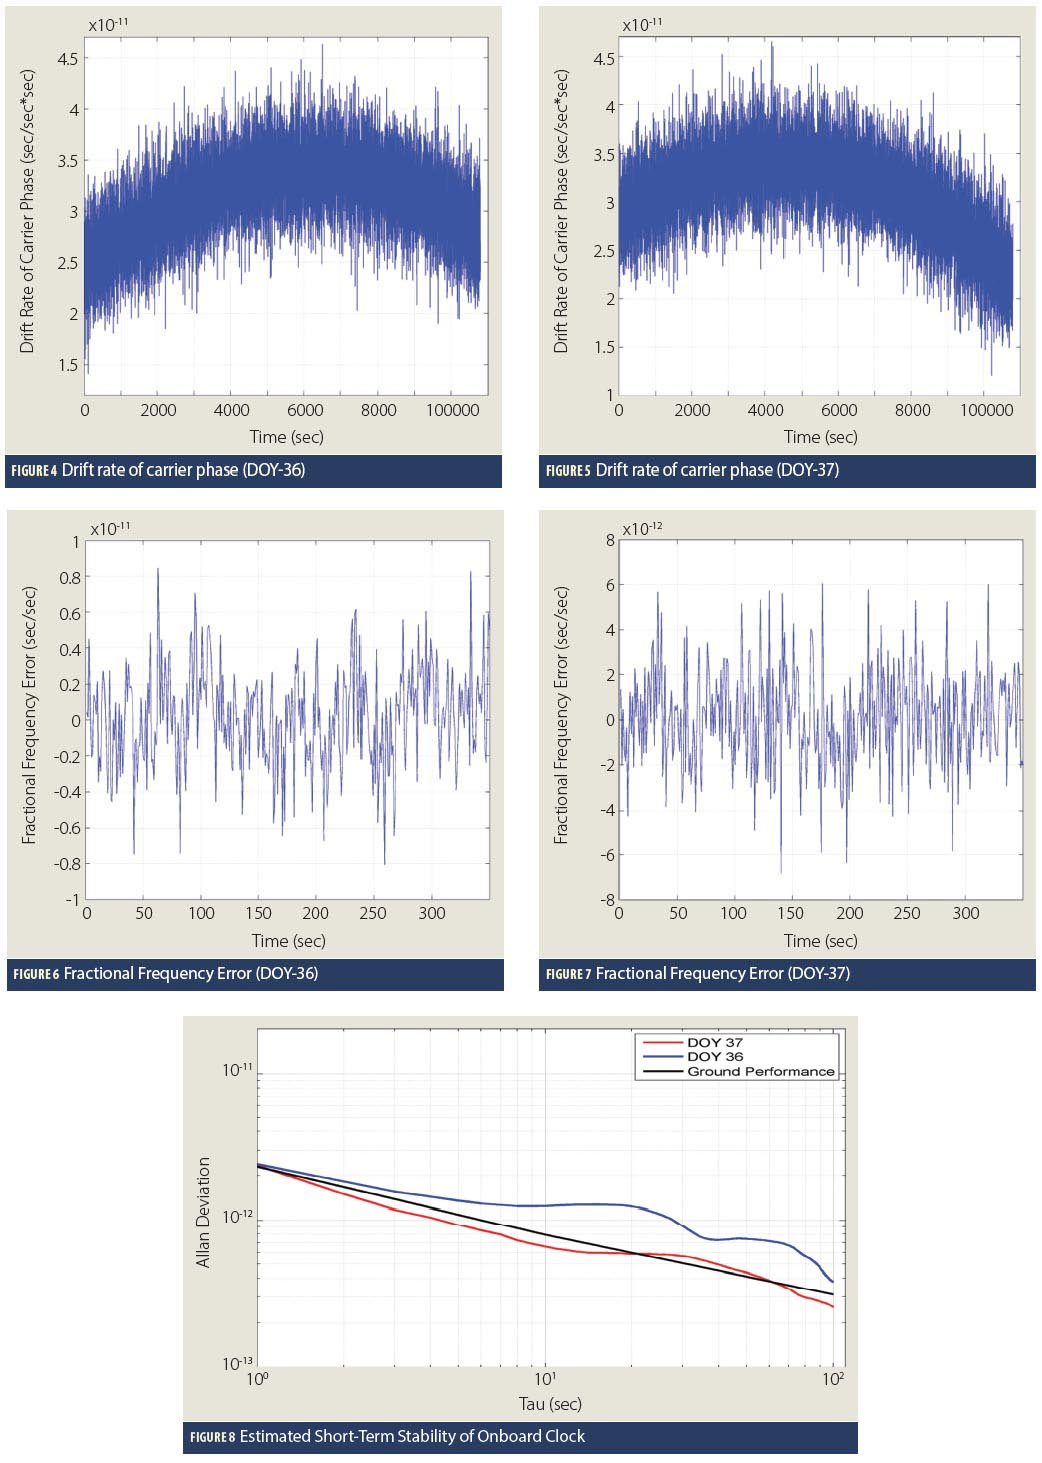 Figures 4, 5, 6, 7 & 8: Estimating the Short-Term Stability of In-Orbit GNSS Clocks